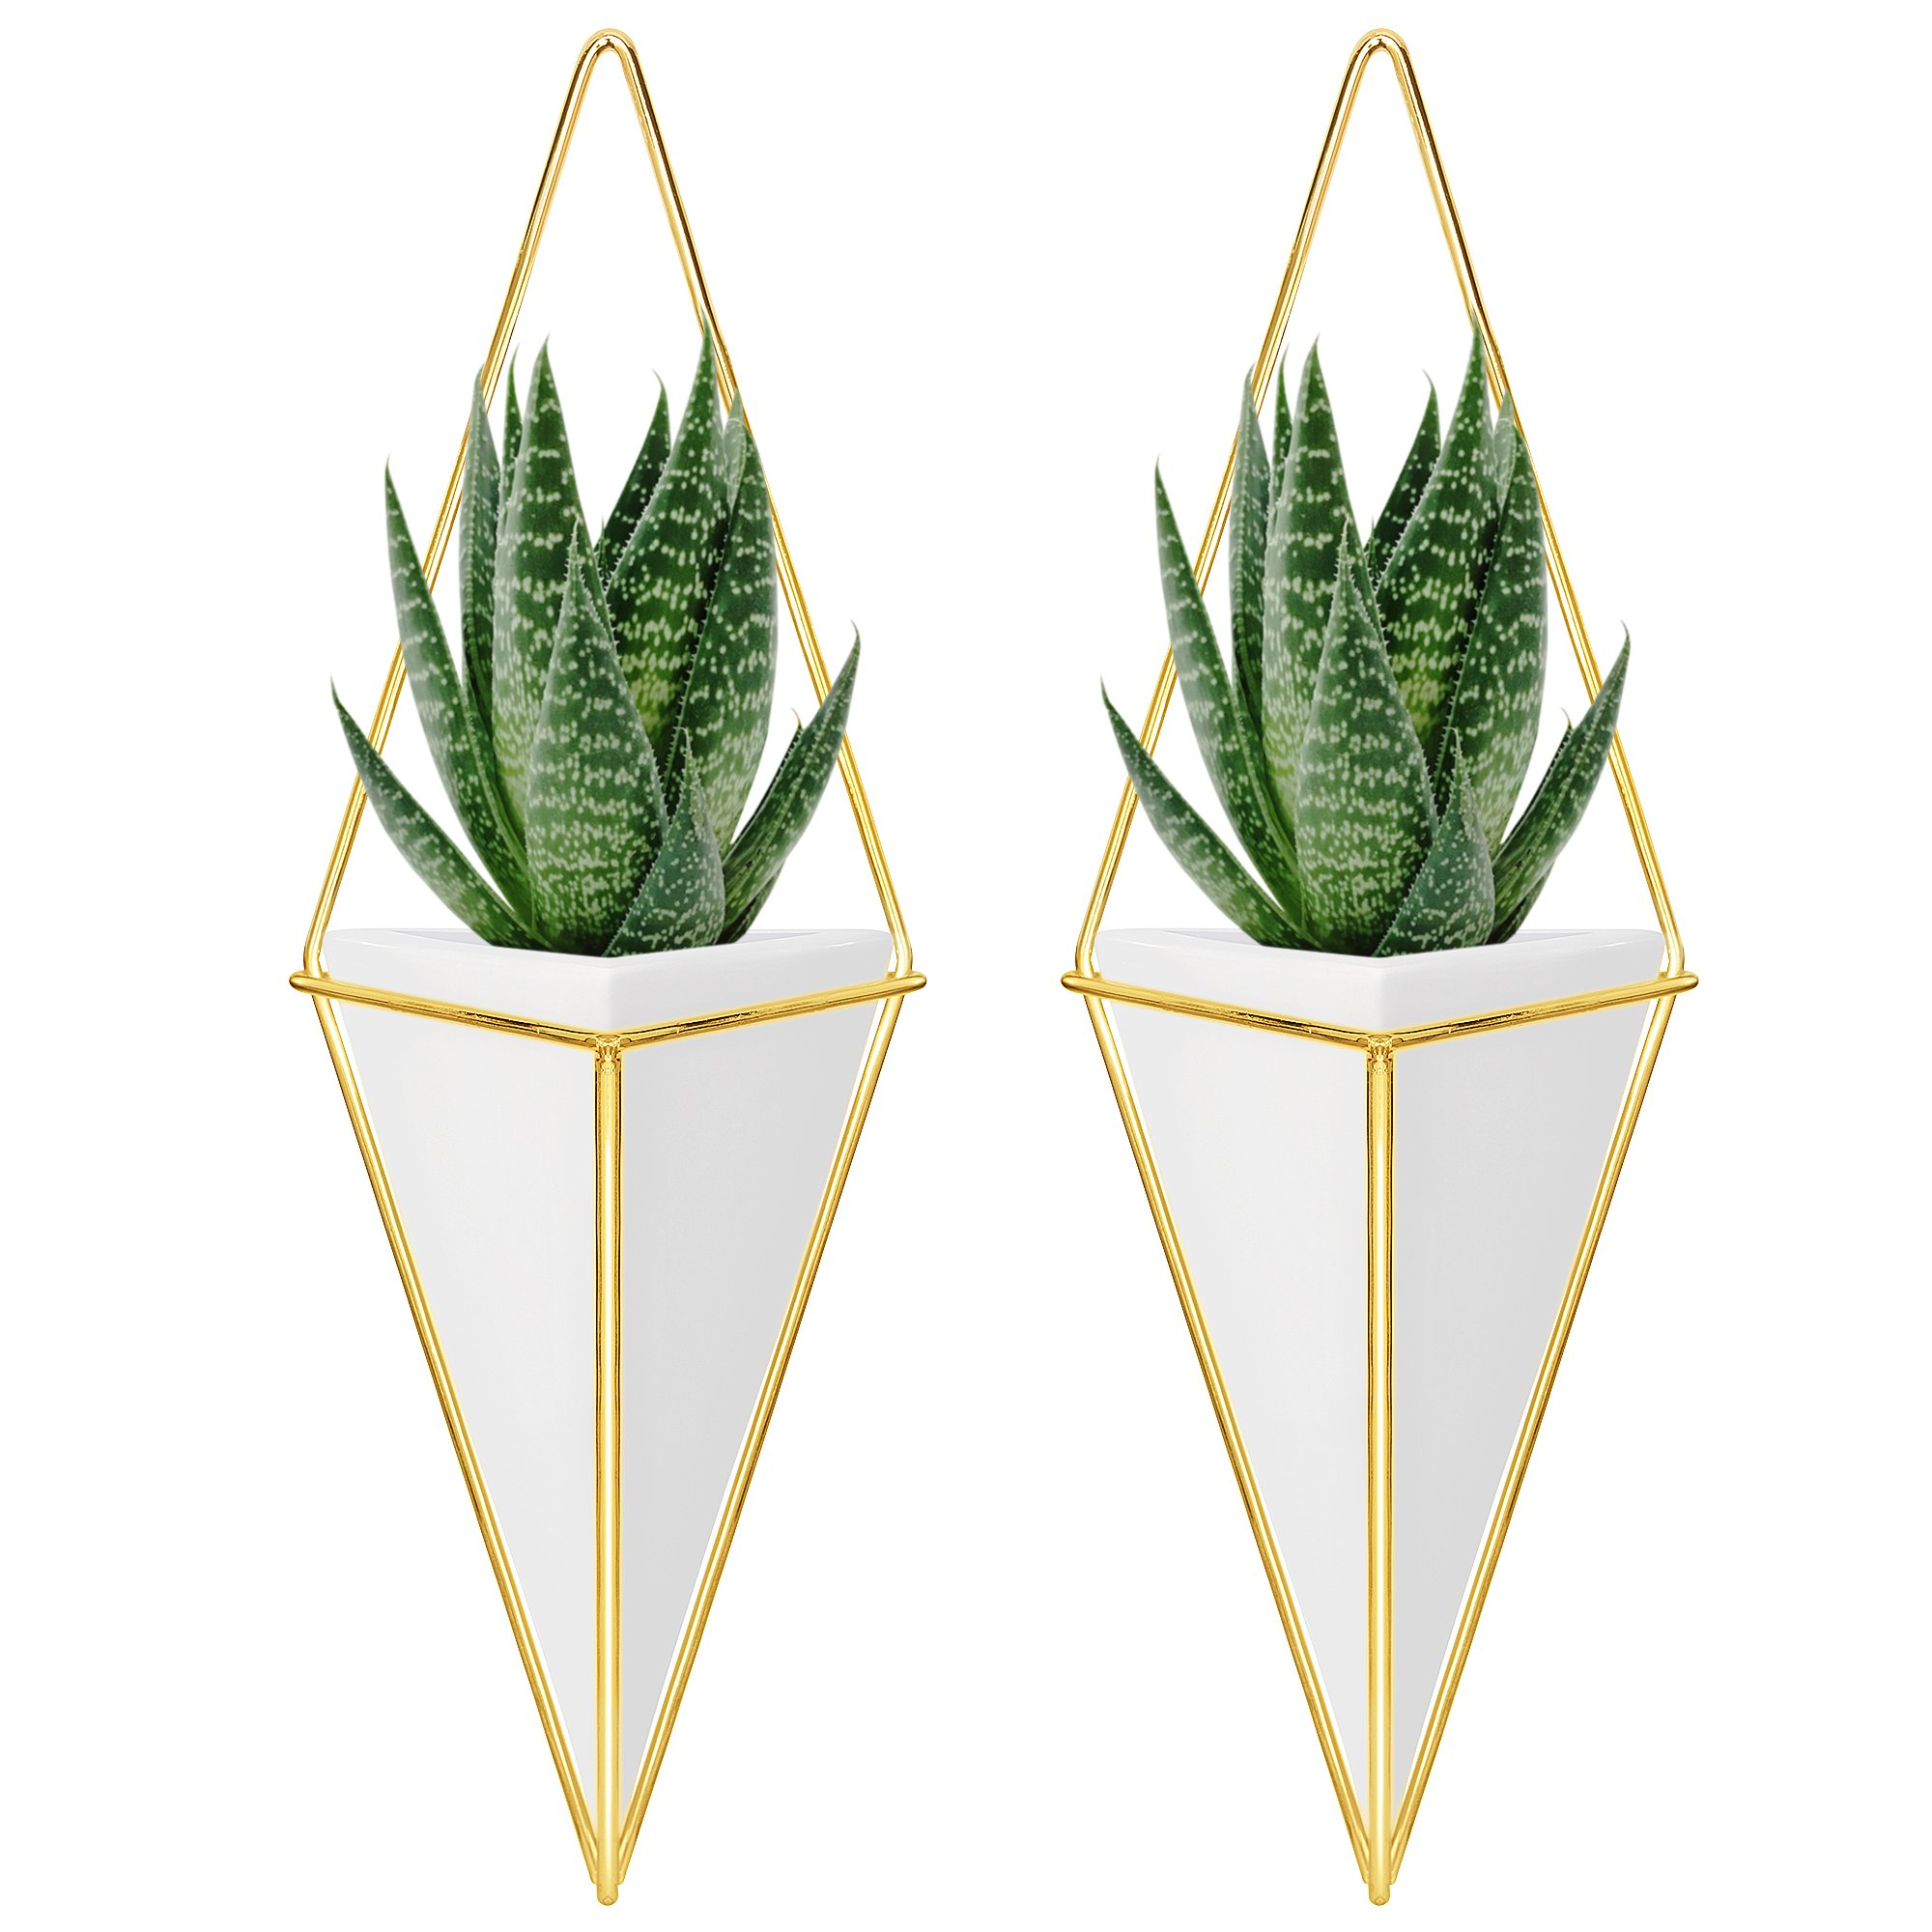 Nellam Ceramic Planter Set - 2 Pcs Modern Geometric Hanging Wall Pots - Brass Framed, Mounted Decorative Vases & Container for Indoor Plants & Succulents - for Flowers, Herbs, Vegetables